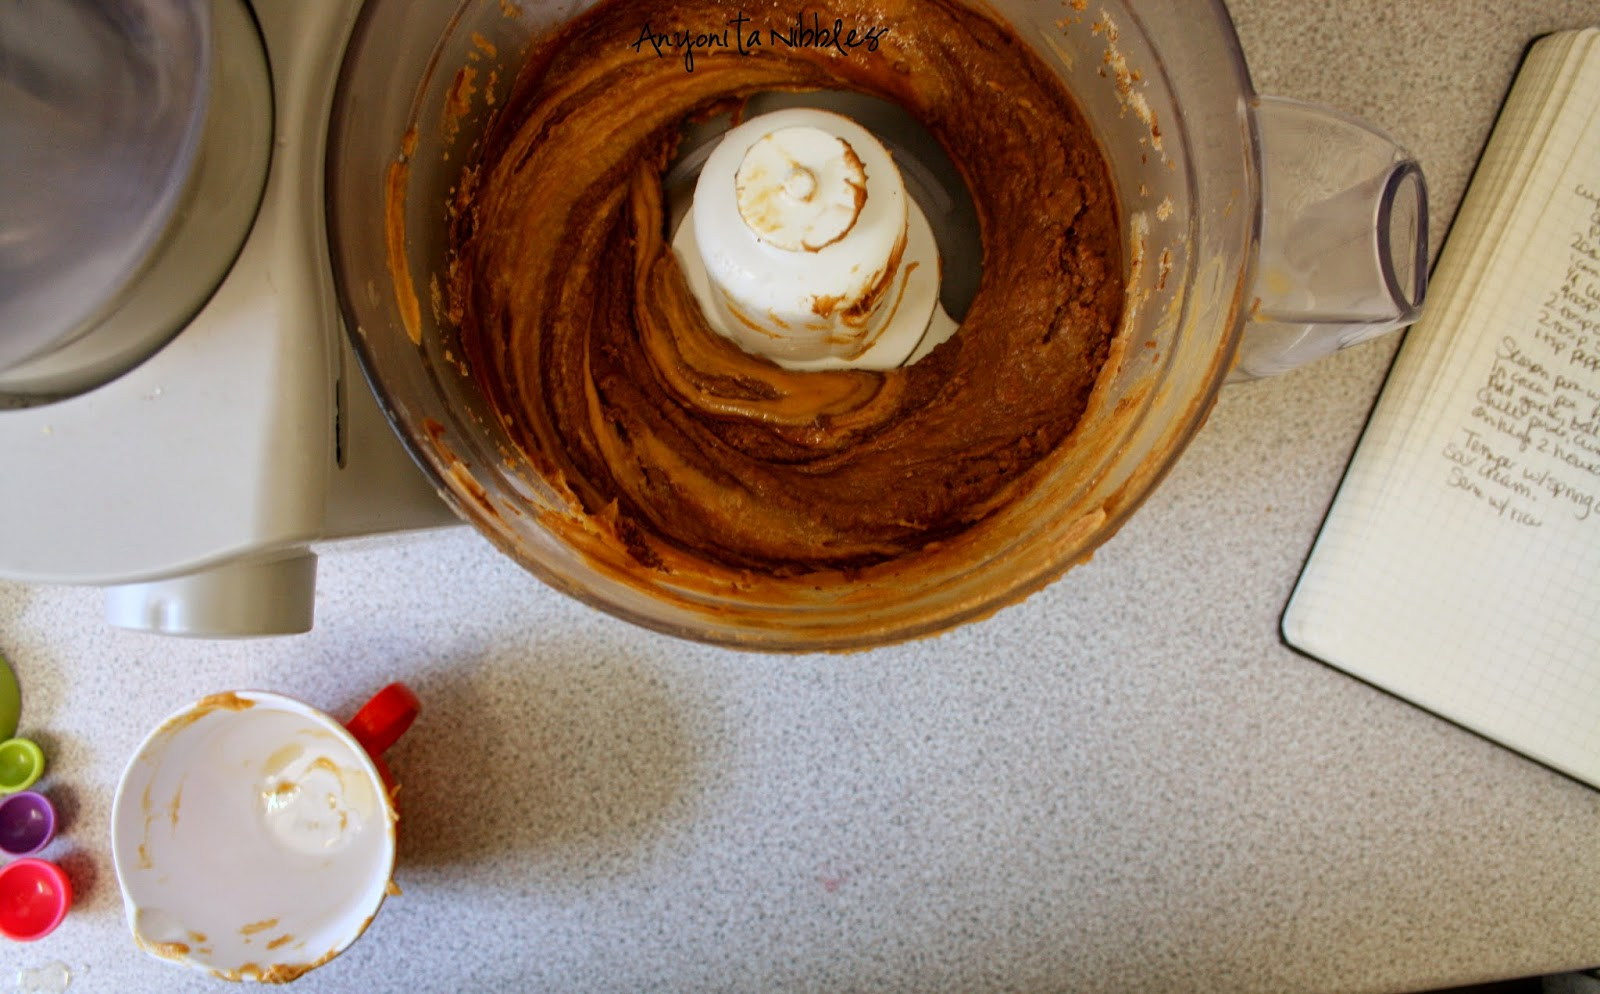 Peanut butter Nutella cookies made in the food processor |Anyonita Nibbles